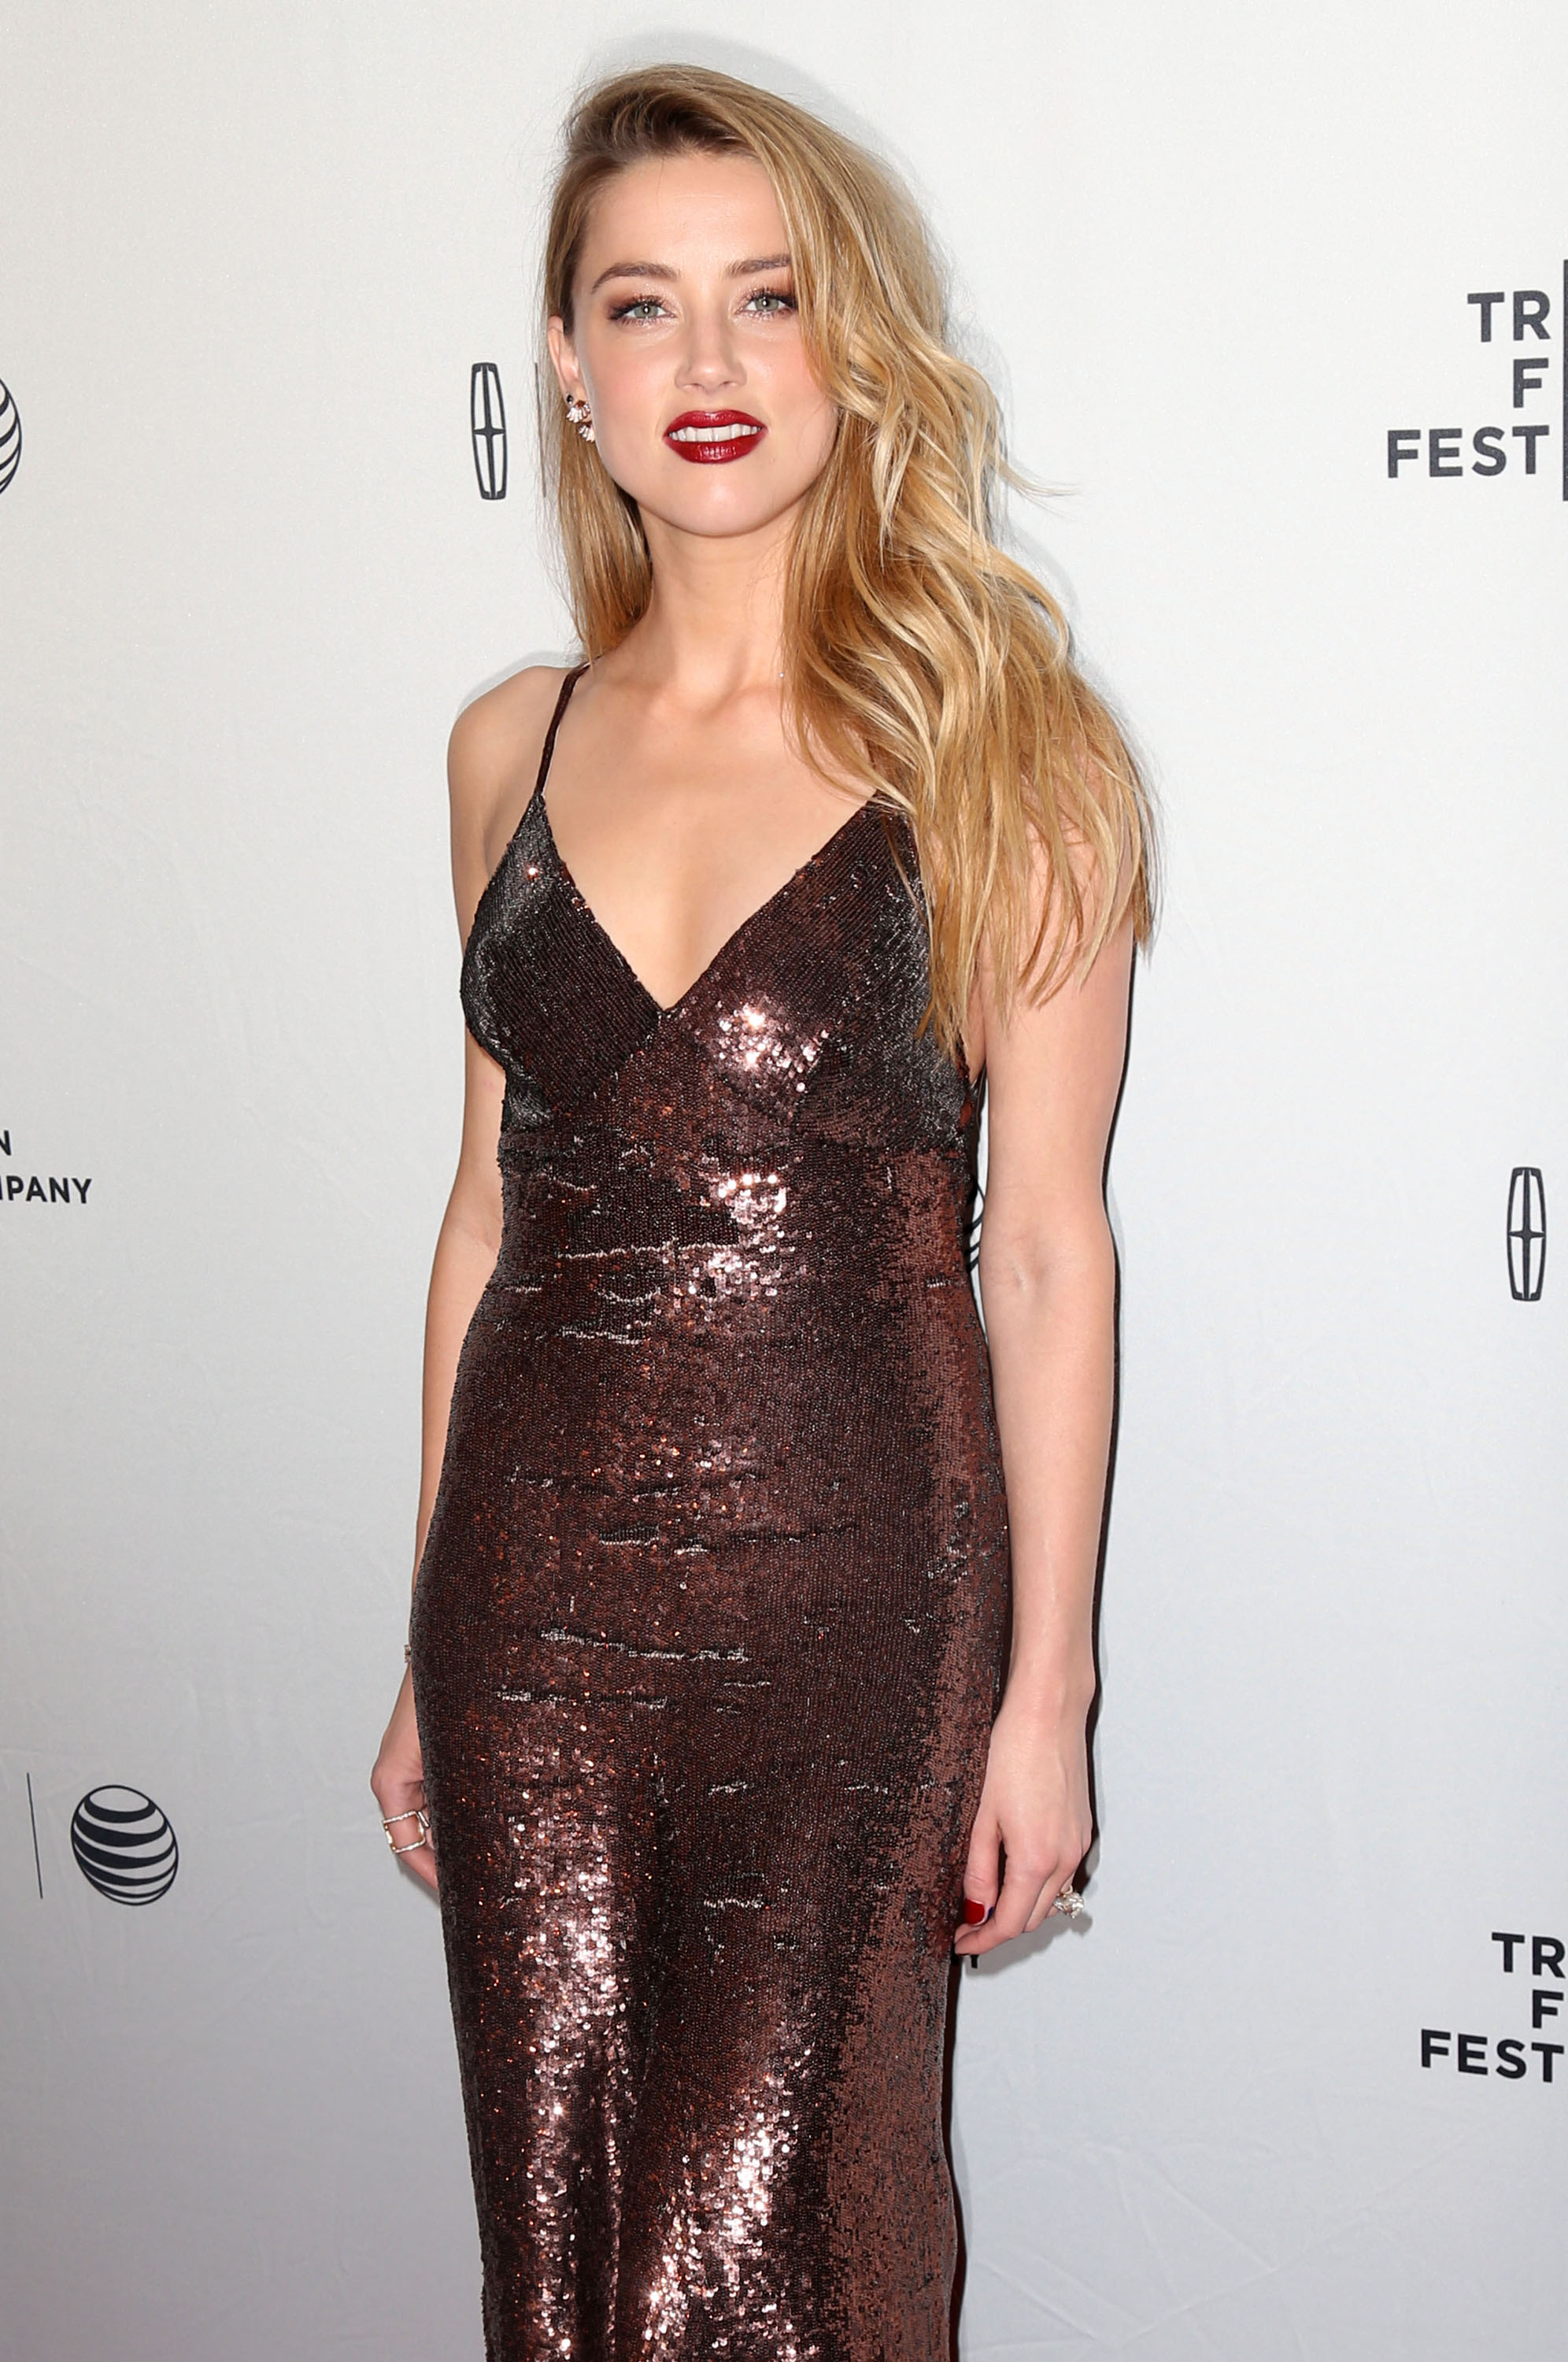 51714897 Celebrities at the 2015 Tribeca Film Festival premiere of 'When I Live My Life Over Again' in New York City, New York on April 18, 2015. Celebrities at the 2015 Tribeca Film Festival premiere of 'When I Live My Life Over Again' in New York City, New York on April 18, 2015. Pictured: Amber Heard FameFlynet, Inc - Beverly Hills, CA, USA - +1 (818) 307-4813